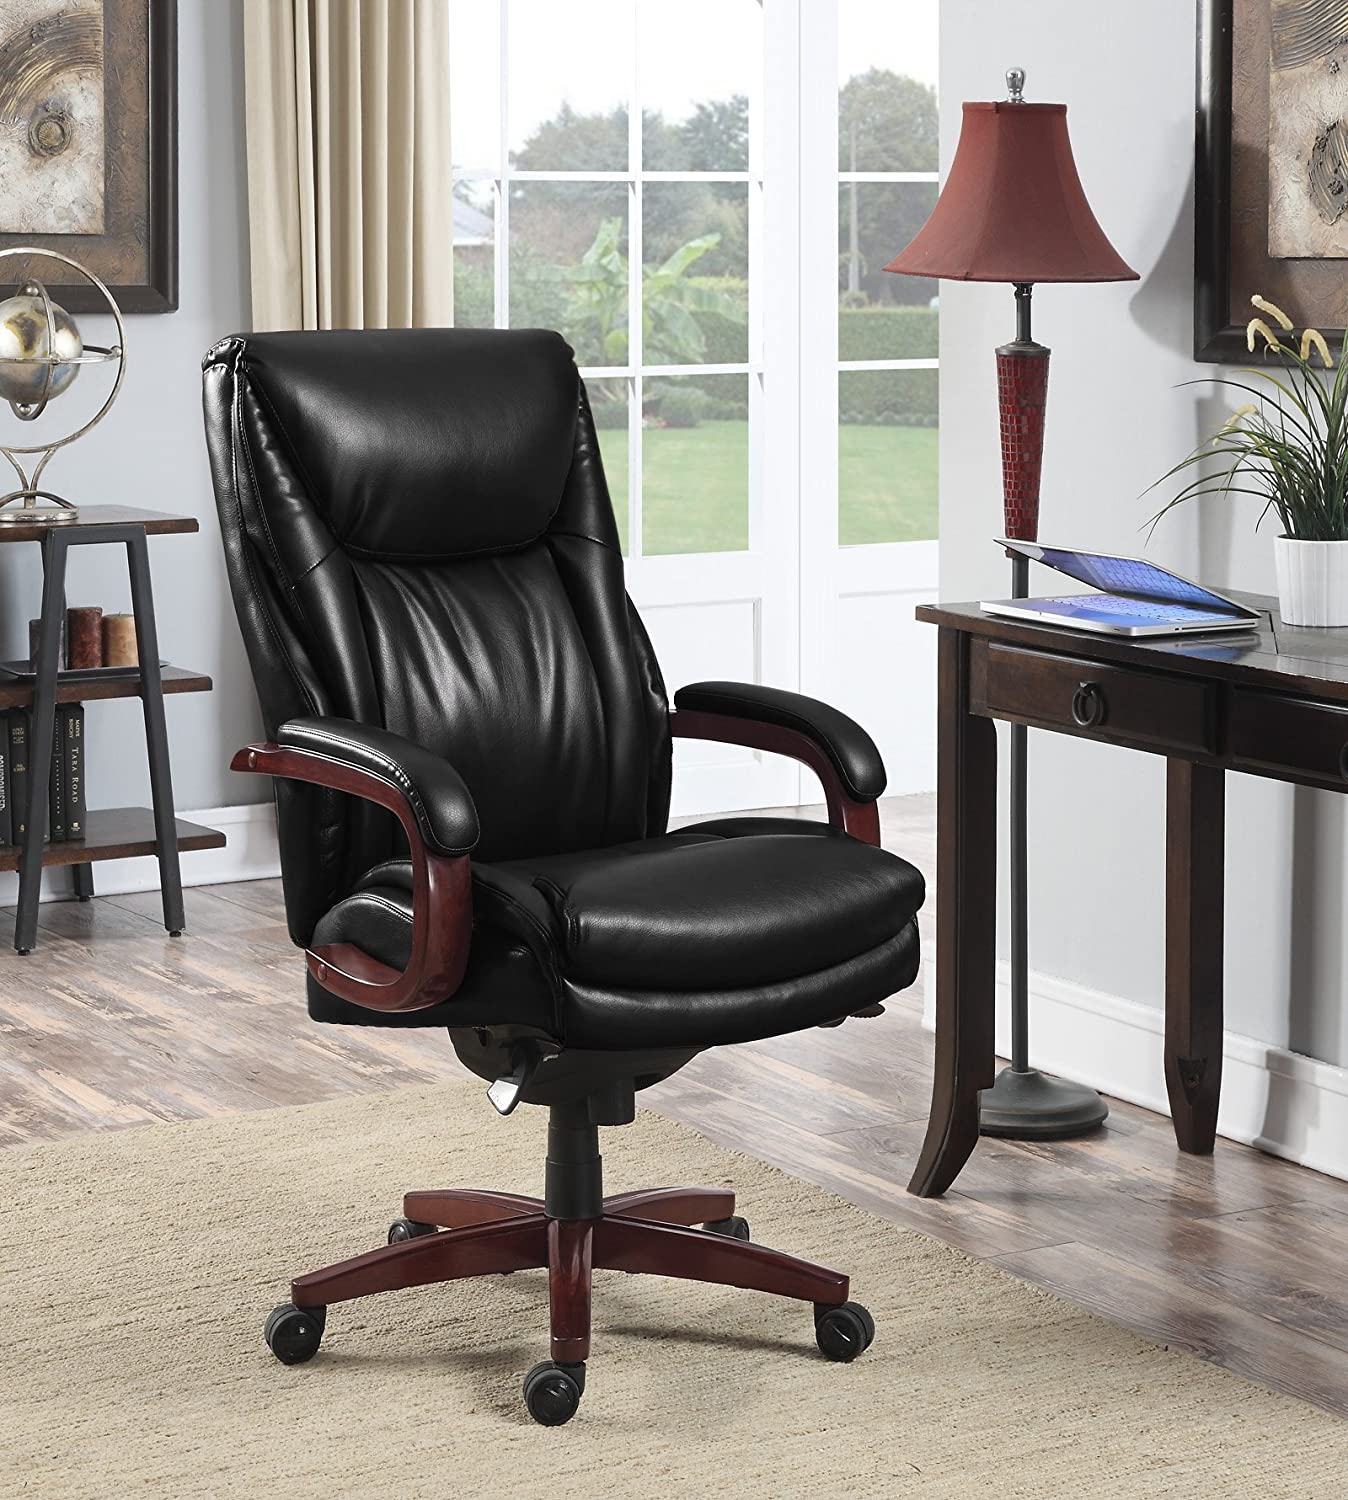 LaZBoy La-Z-Boy Edmonton Chair Big/Tall Executive Office, Black